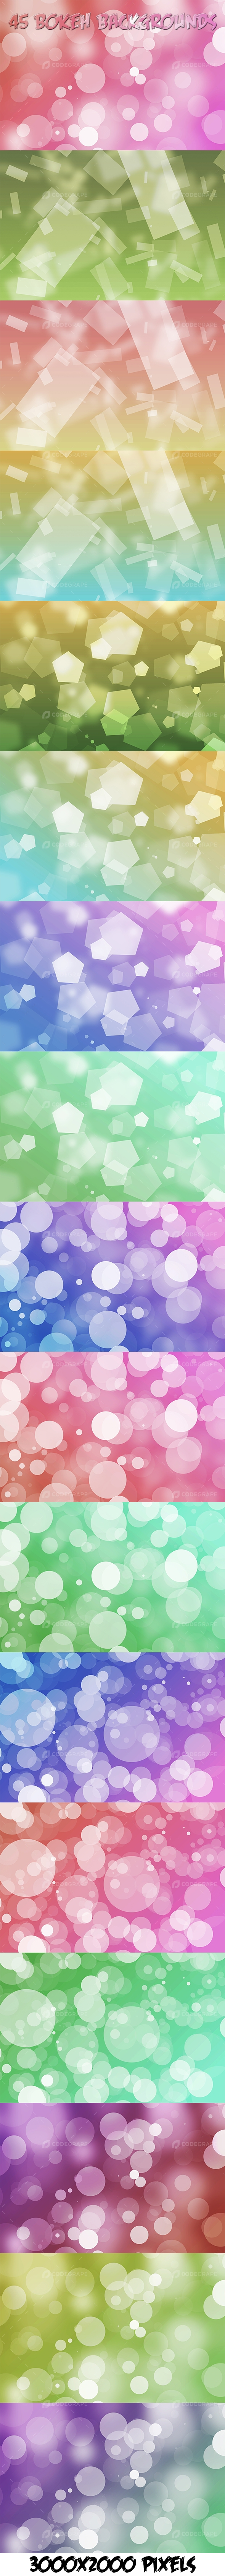 45 Bokeh Backgrounds